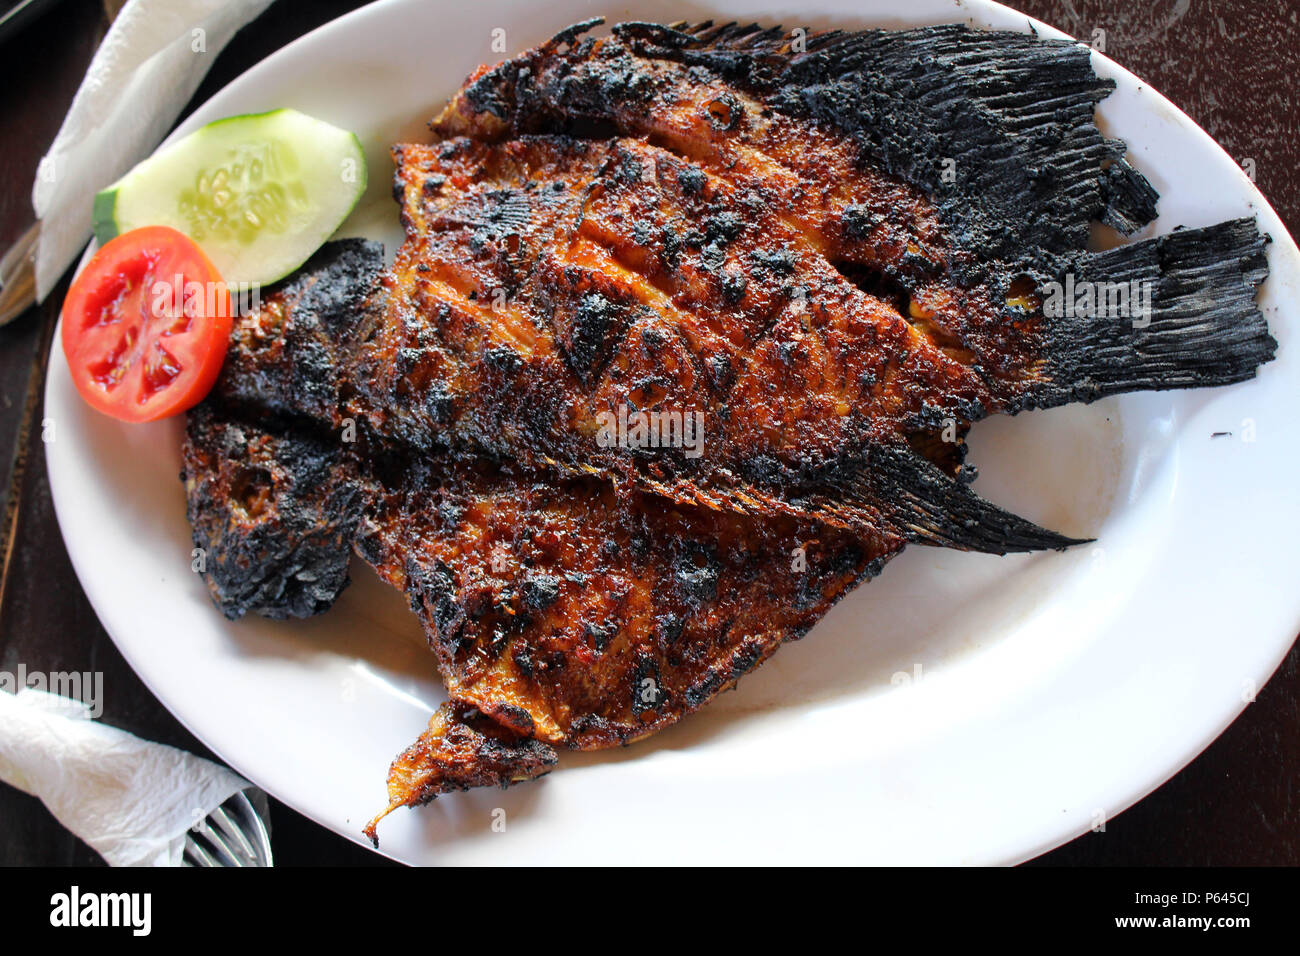 Page 2 Ikan High Resolution Stock Photography And Images Alamy